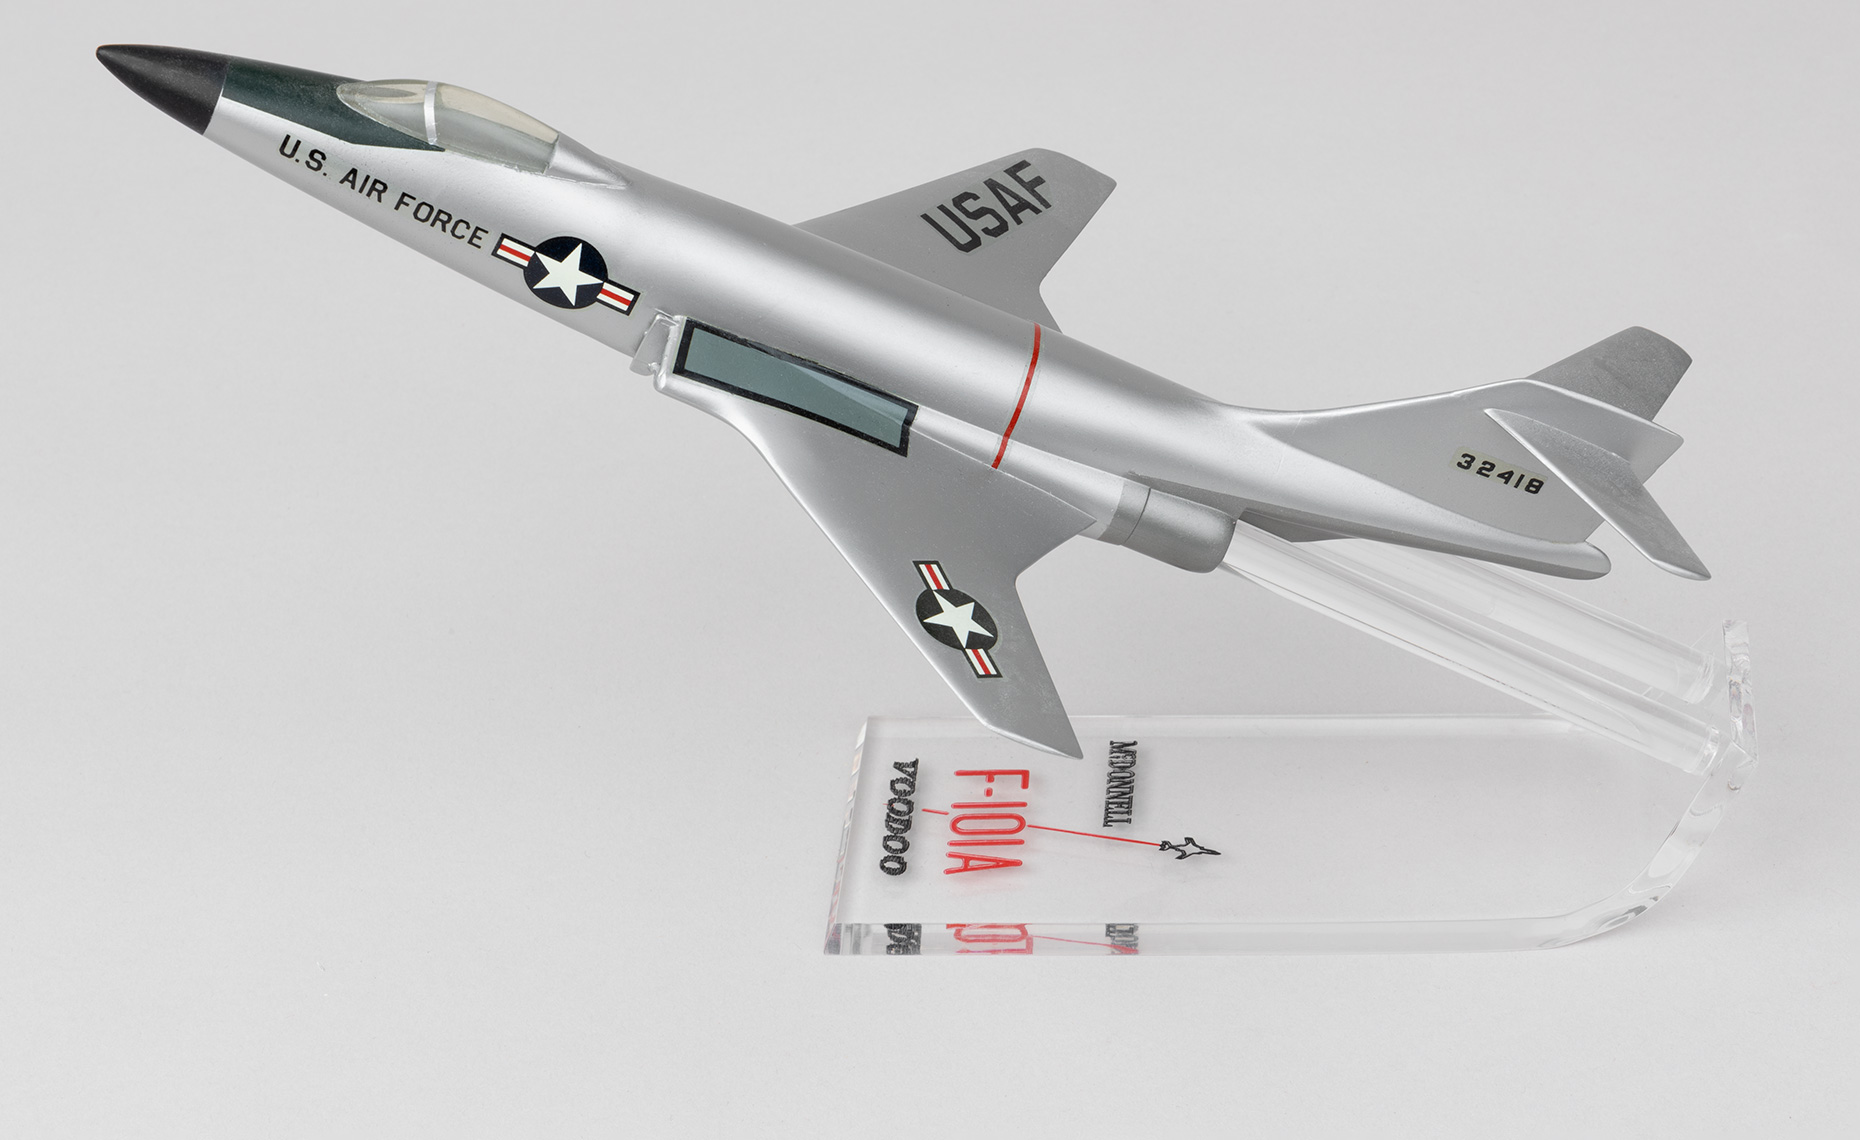 Model of McDonell F-101A Voodoo